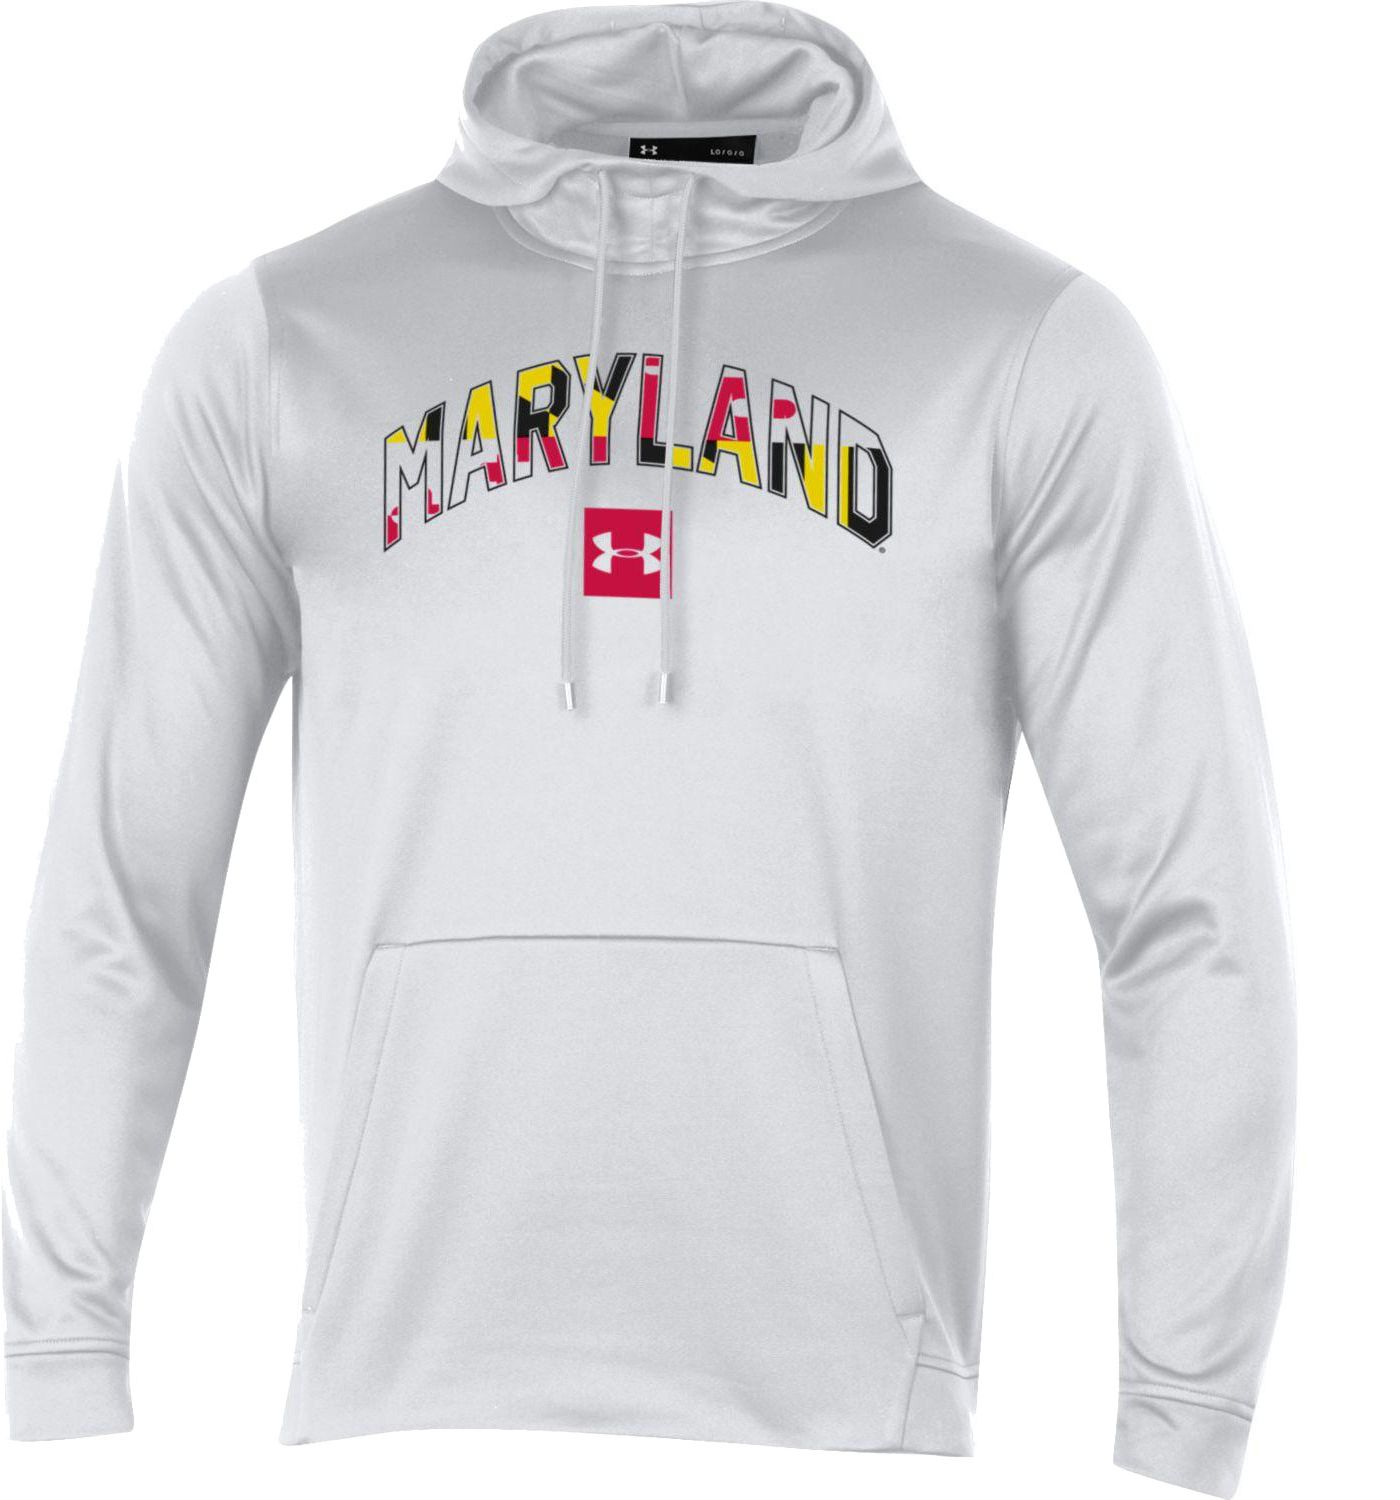 Under Armour Men's Maryland Terrapins 'Maryland Pride' Armourfleece Pullover White Hoodie